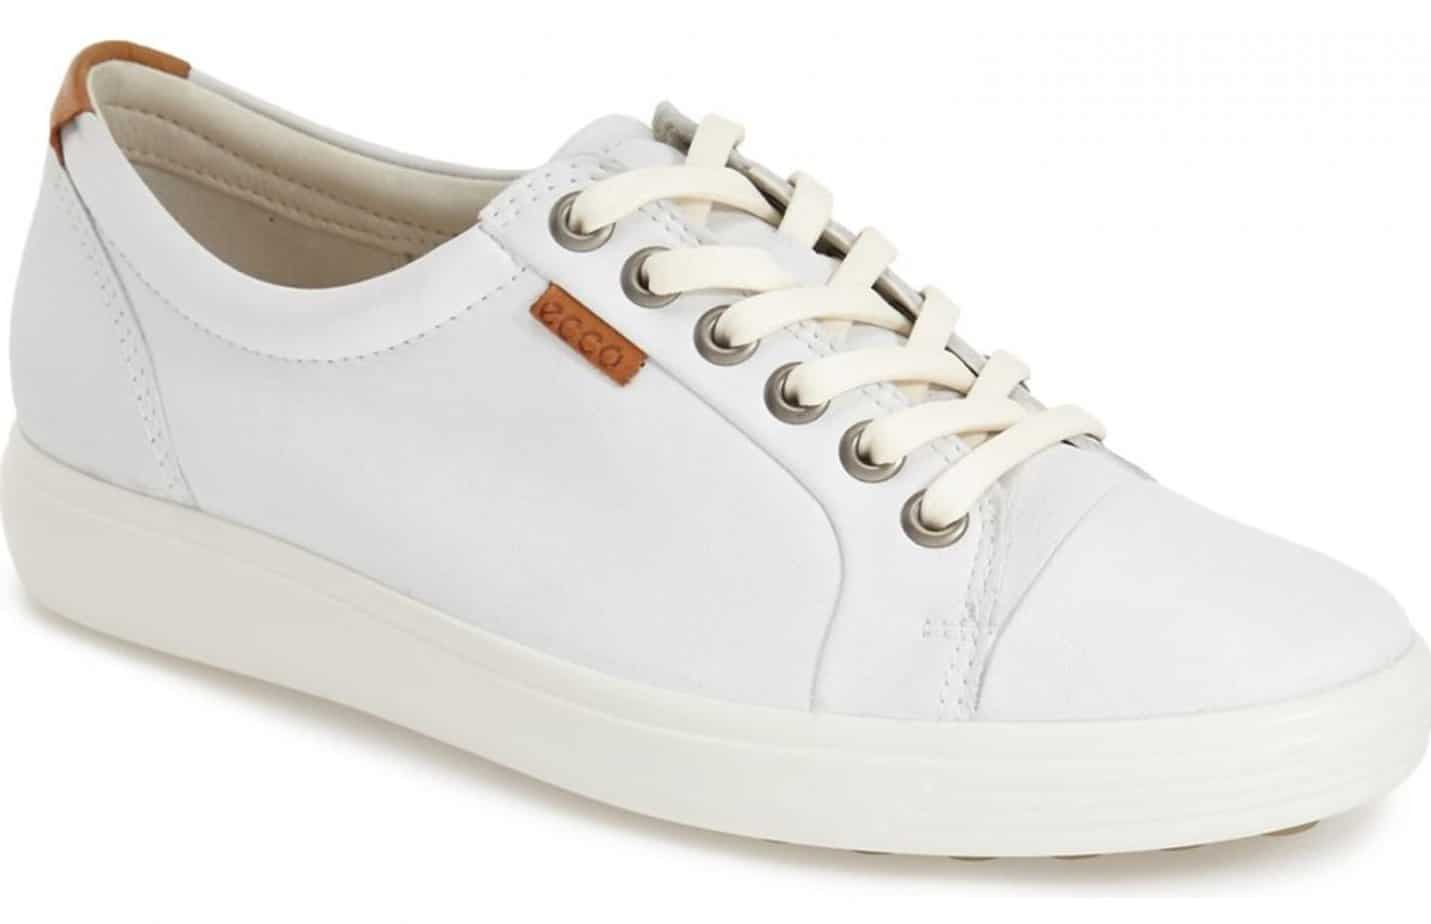 ecco white leather sneaker